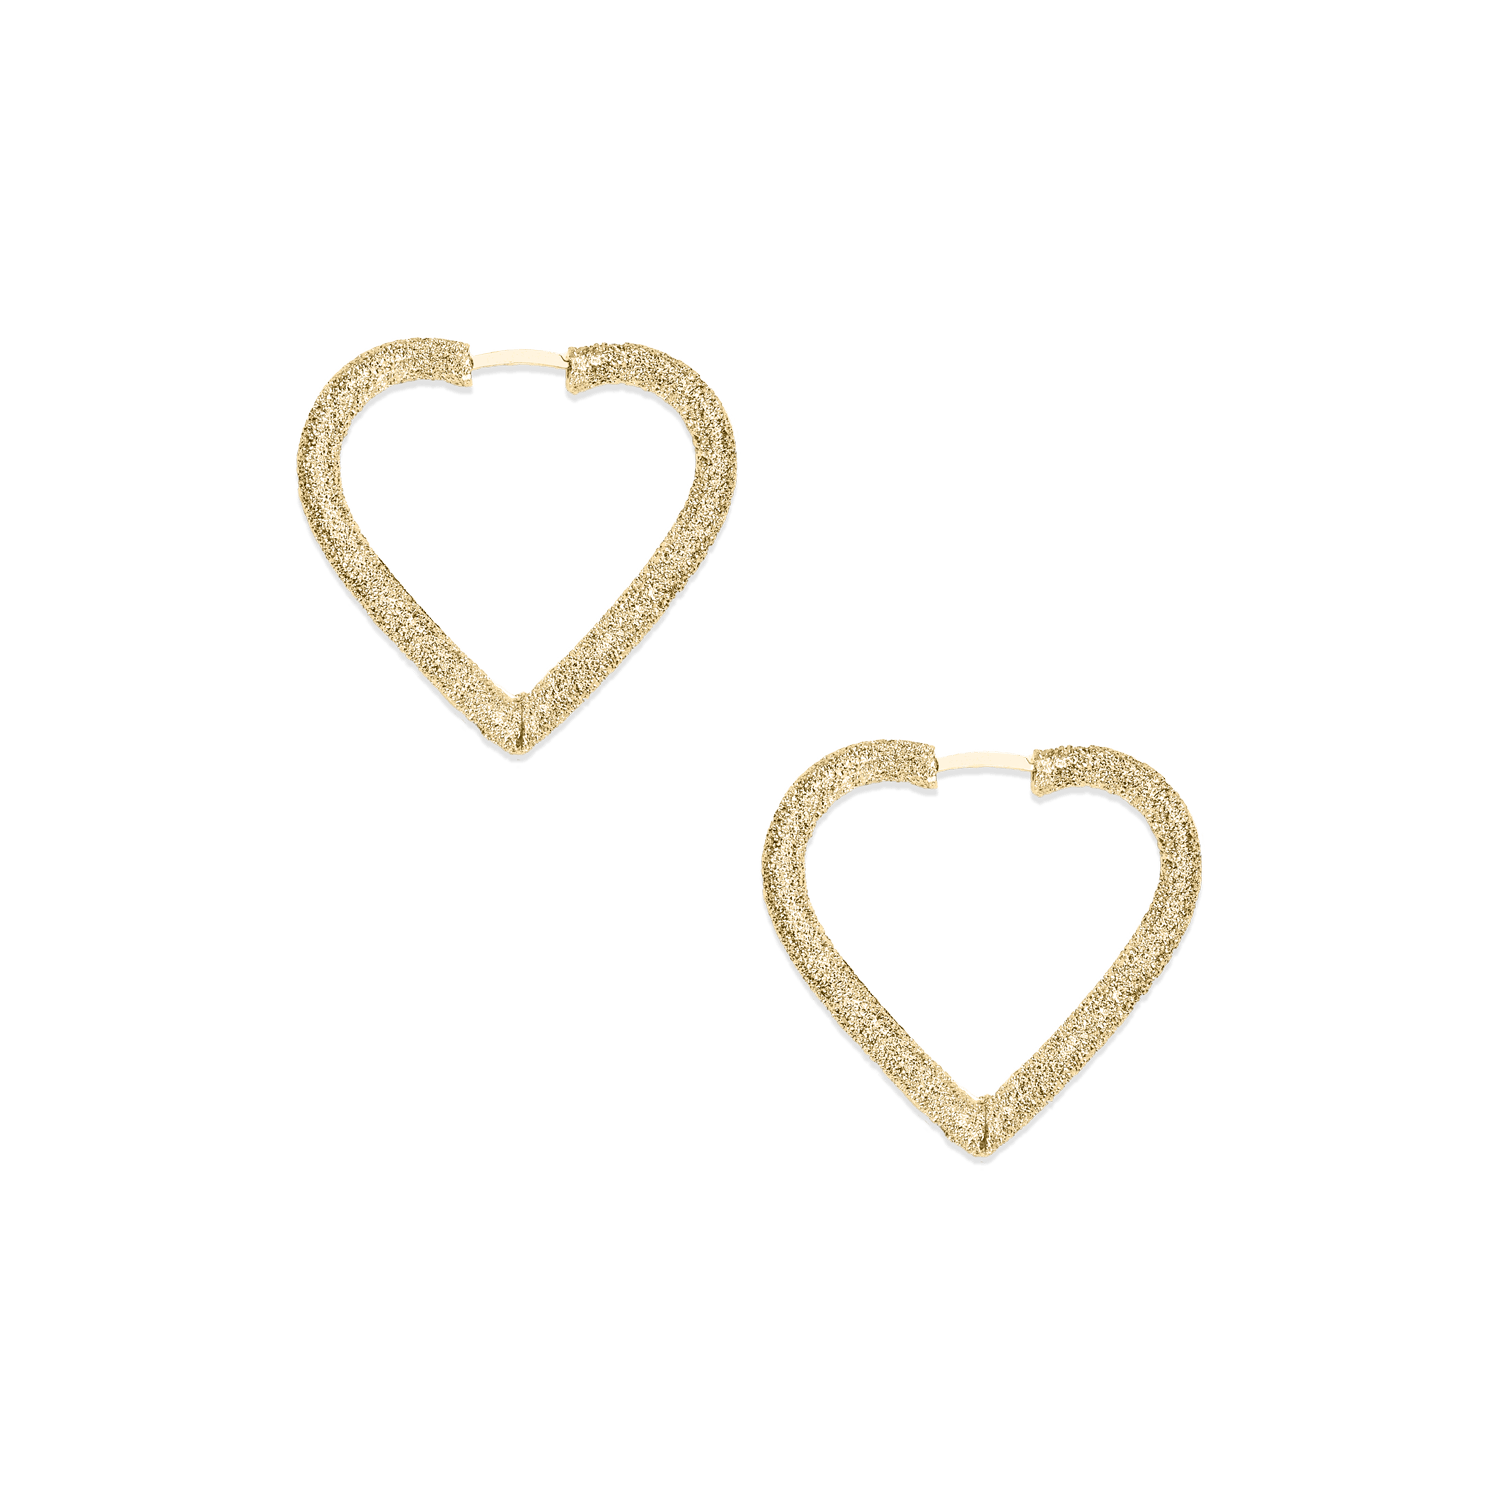 Small heart shape hoop earrings in yellow gold